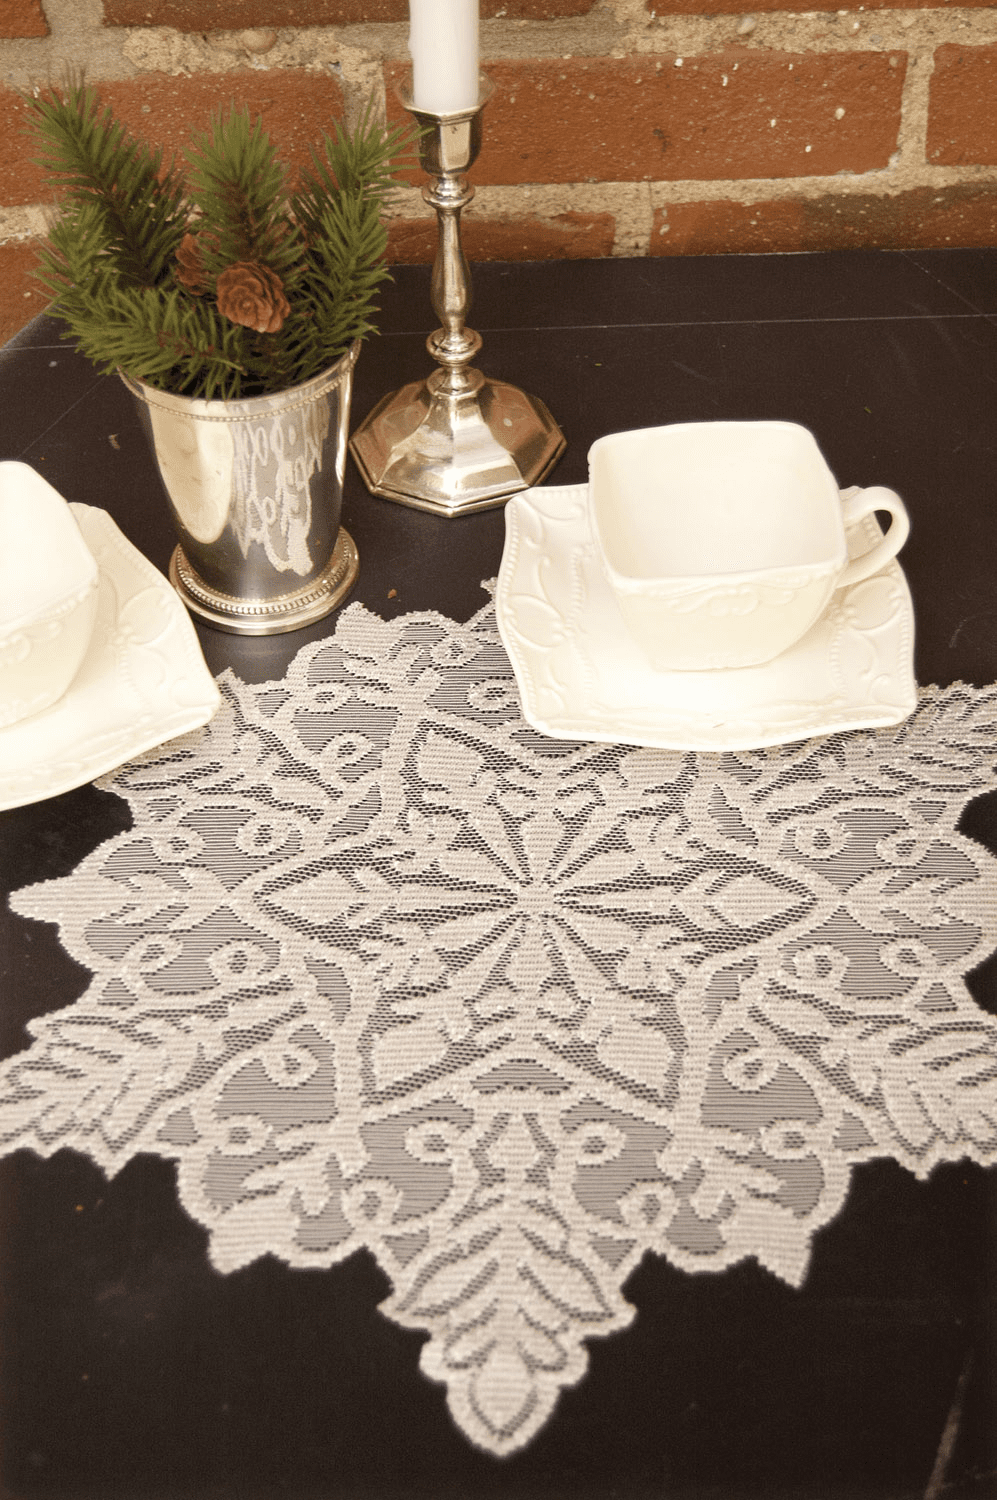 Silver Snowflake Doily, set of 6